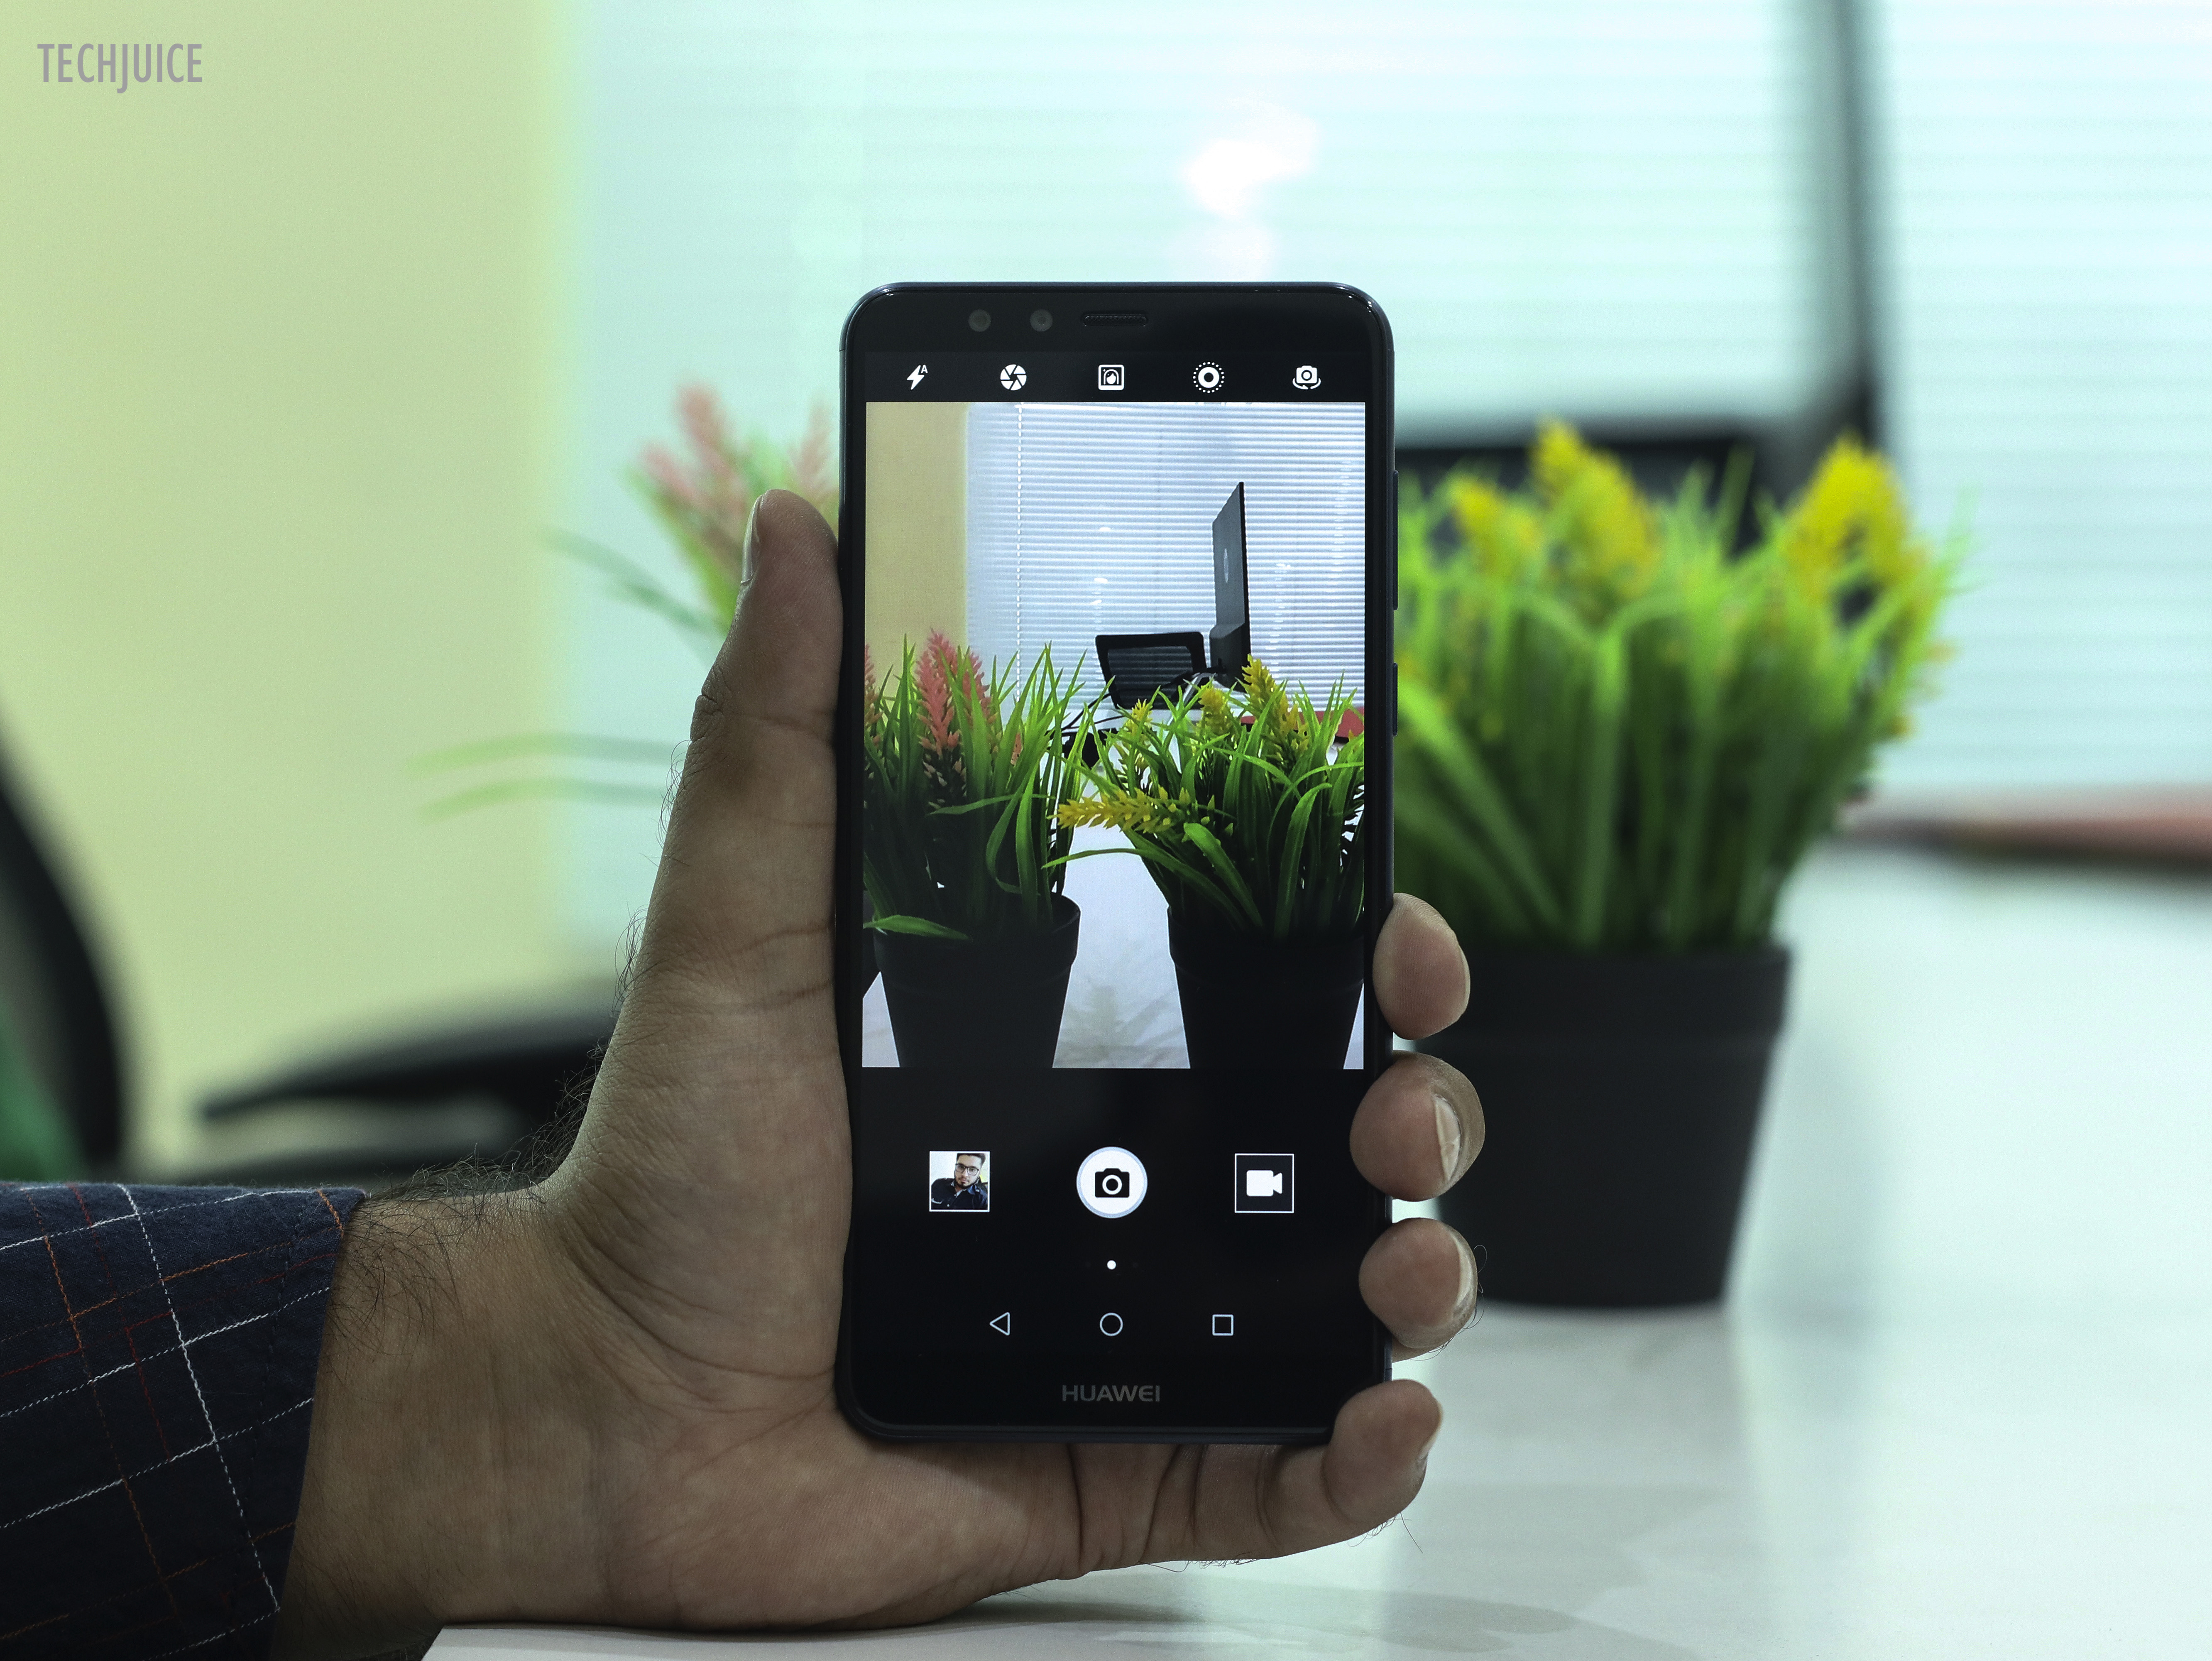 Huawei Y9 (2018) Review: 4 cameras, bezel-less display and a big